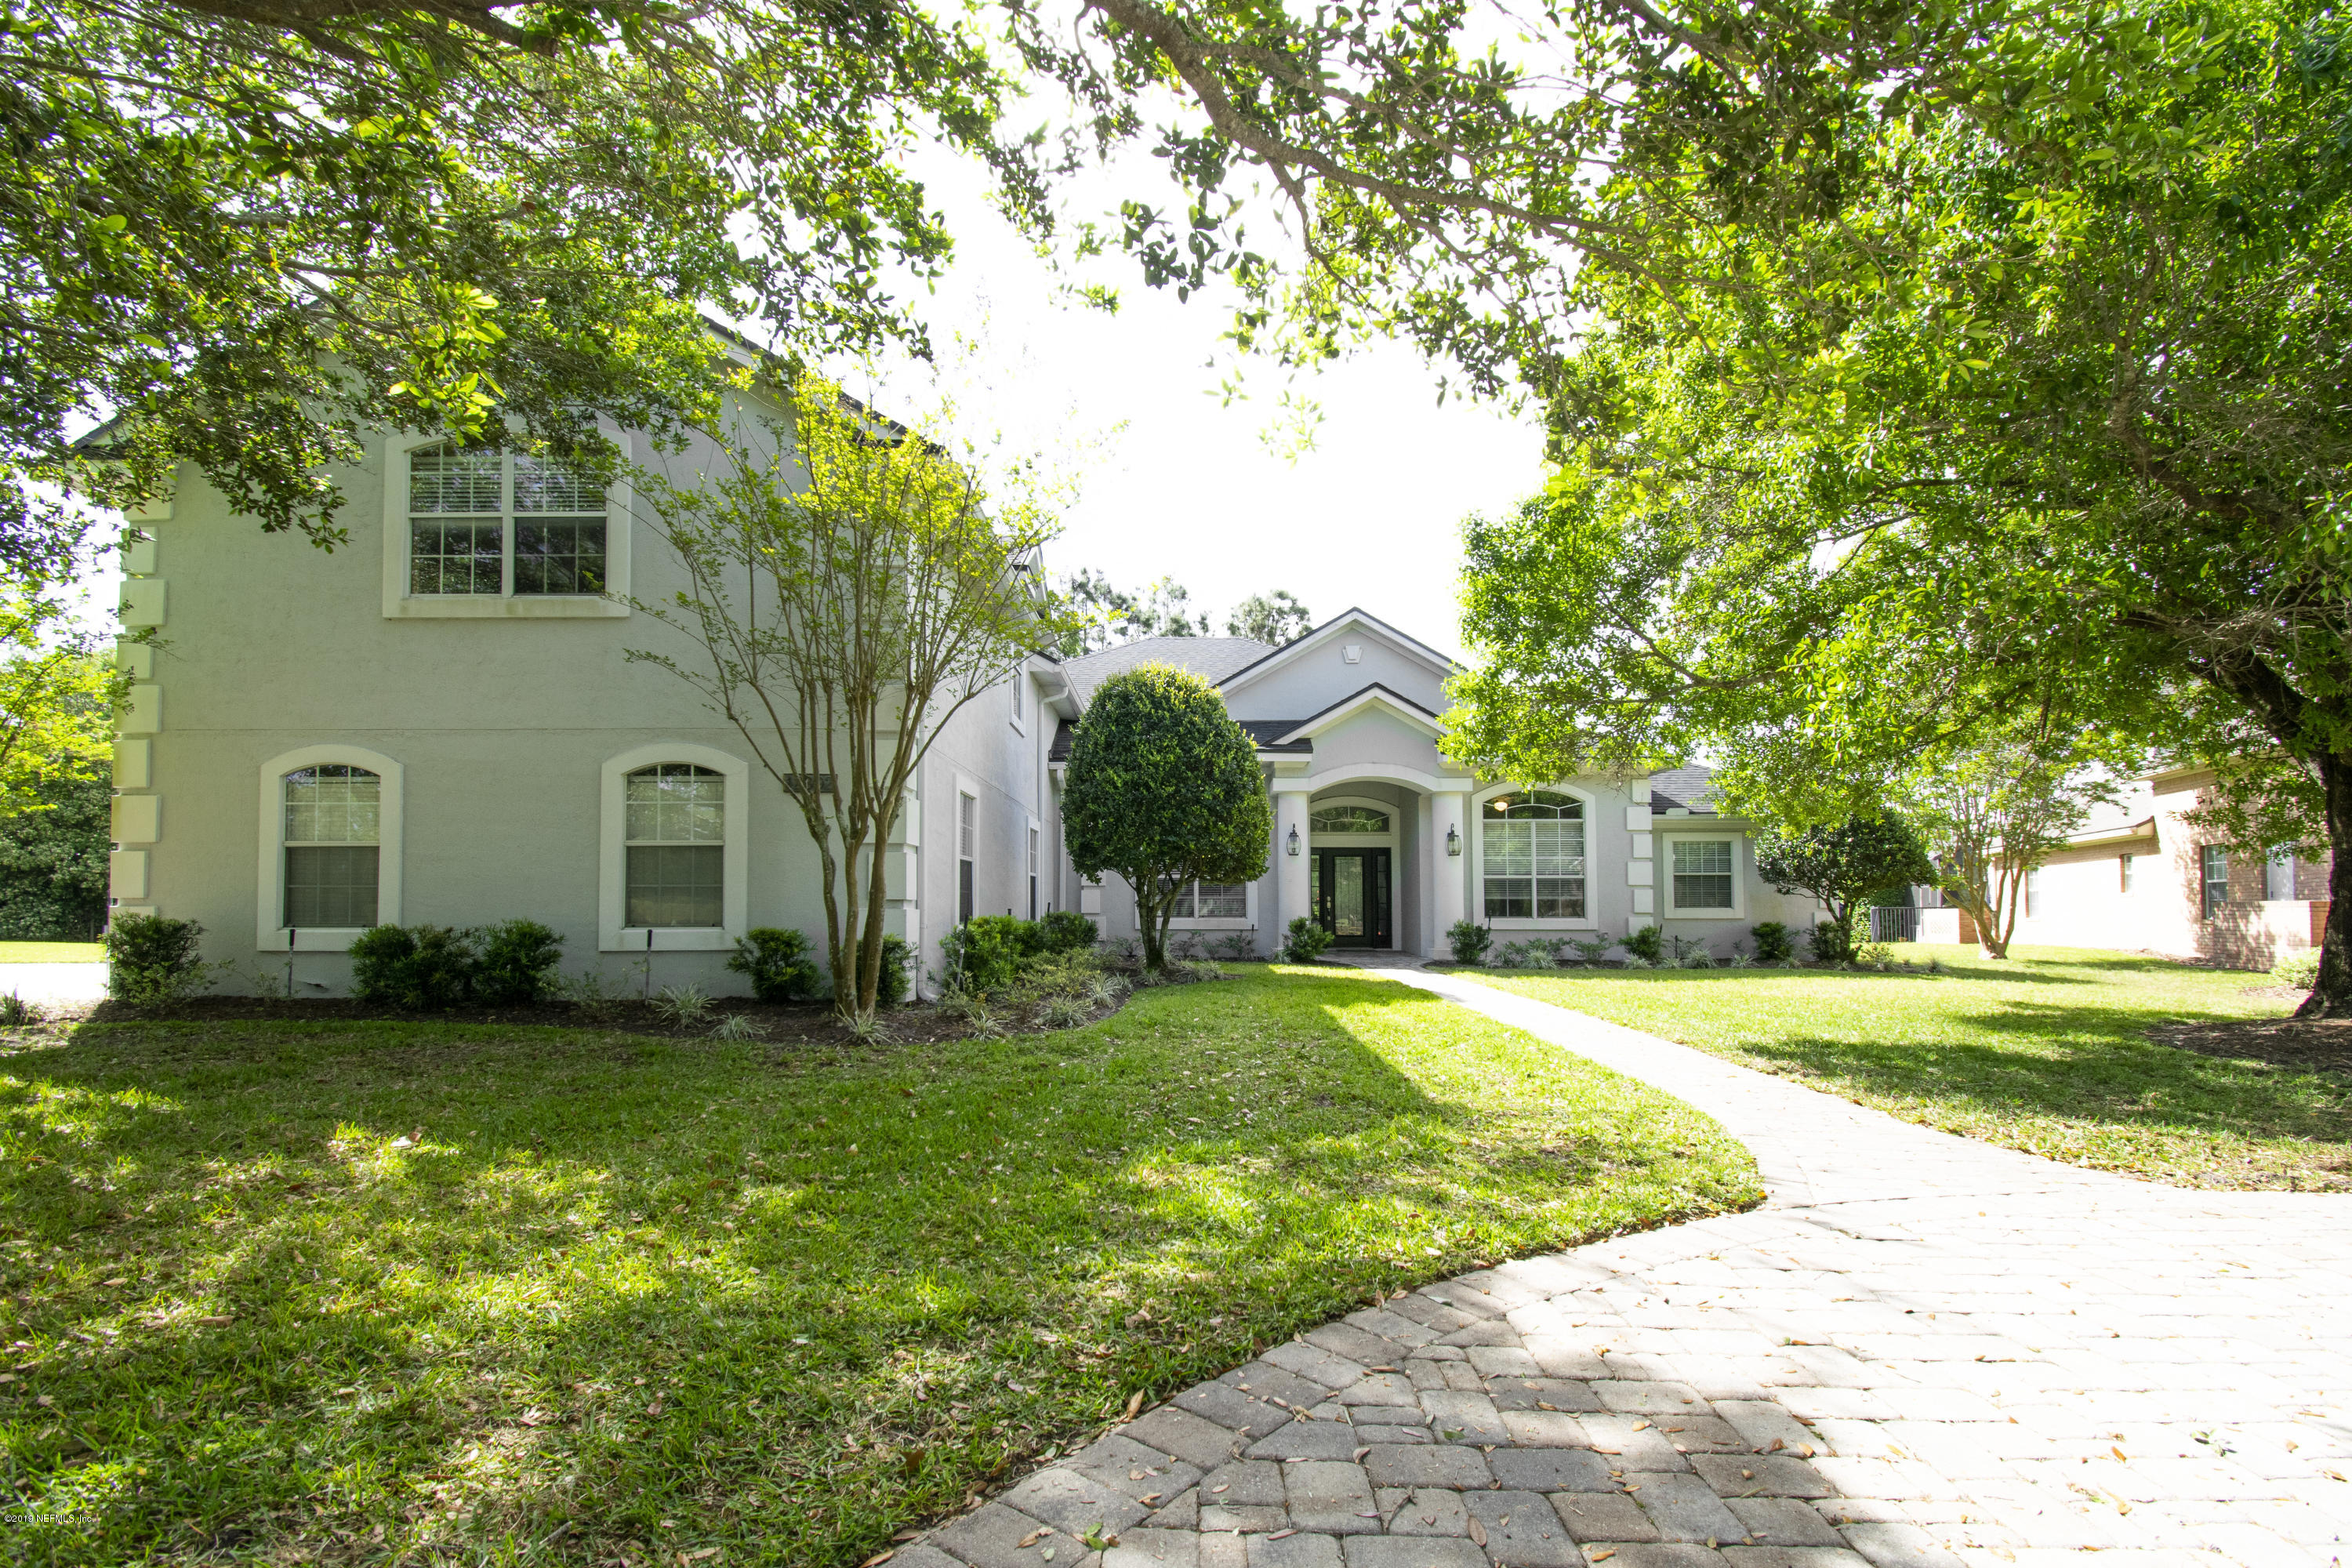 12802 HUNT CLUB, JACKSONVILLE, FLORIDA 32224, 5 Bedrooms Bedrooms, ,5 BathroomsBathrooms,Residential - single family,For sale,HUNT CLUB,987278